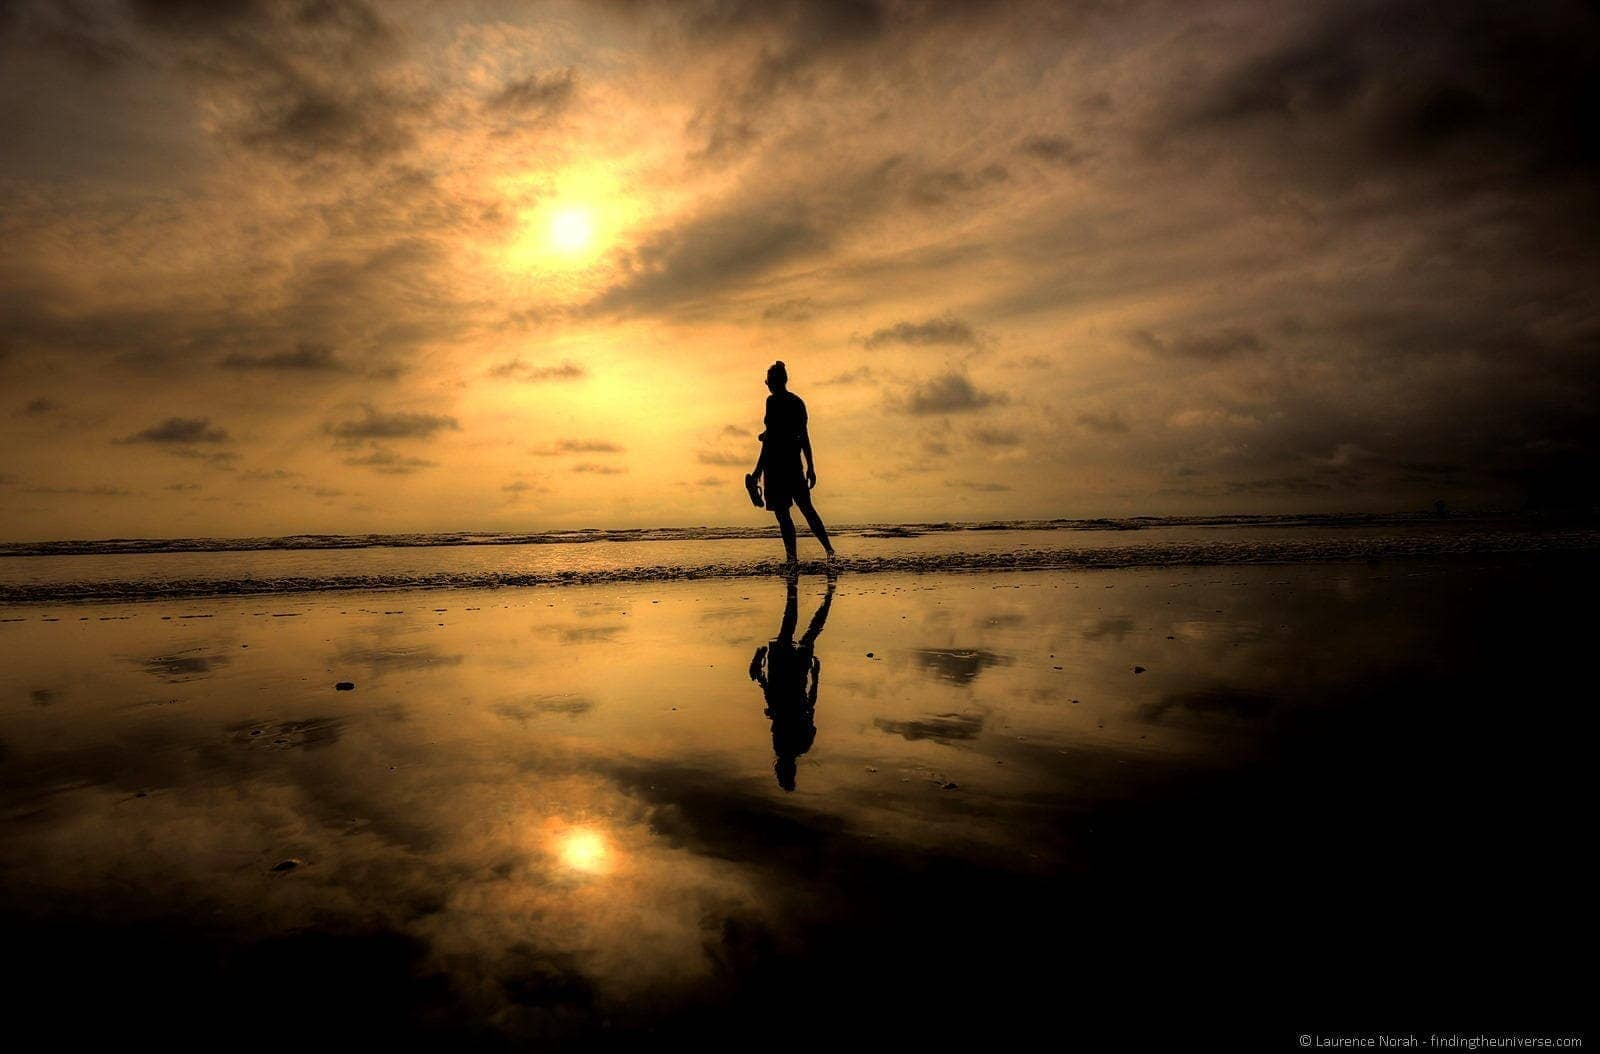 Girl at sunset reflection Canoa Ecuador 2